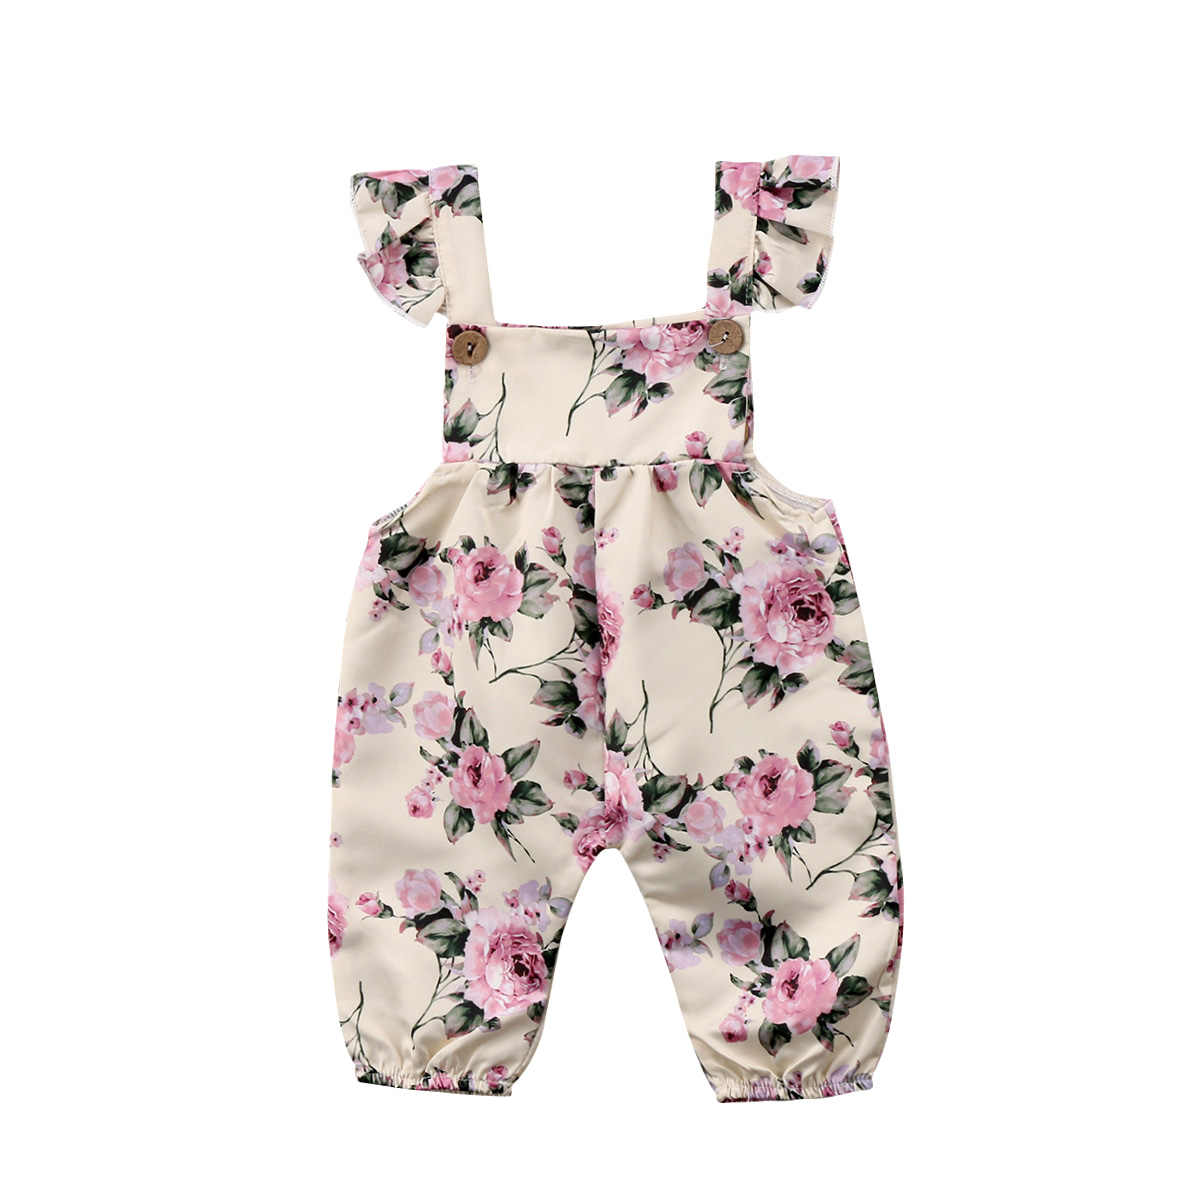 1cd6807b1bf3 Pudcoco Newborn Infant Baby Girls Clothes Summer Strap Flower Romper  Overall Jumpsuit Outfit Baby Girls Clothing